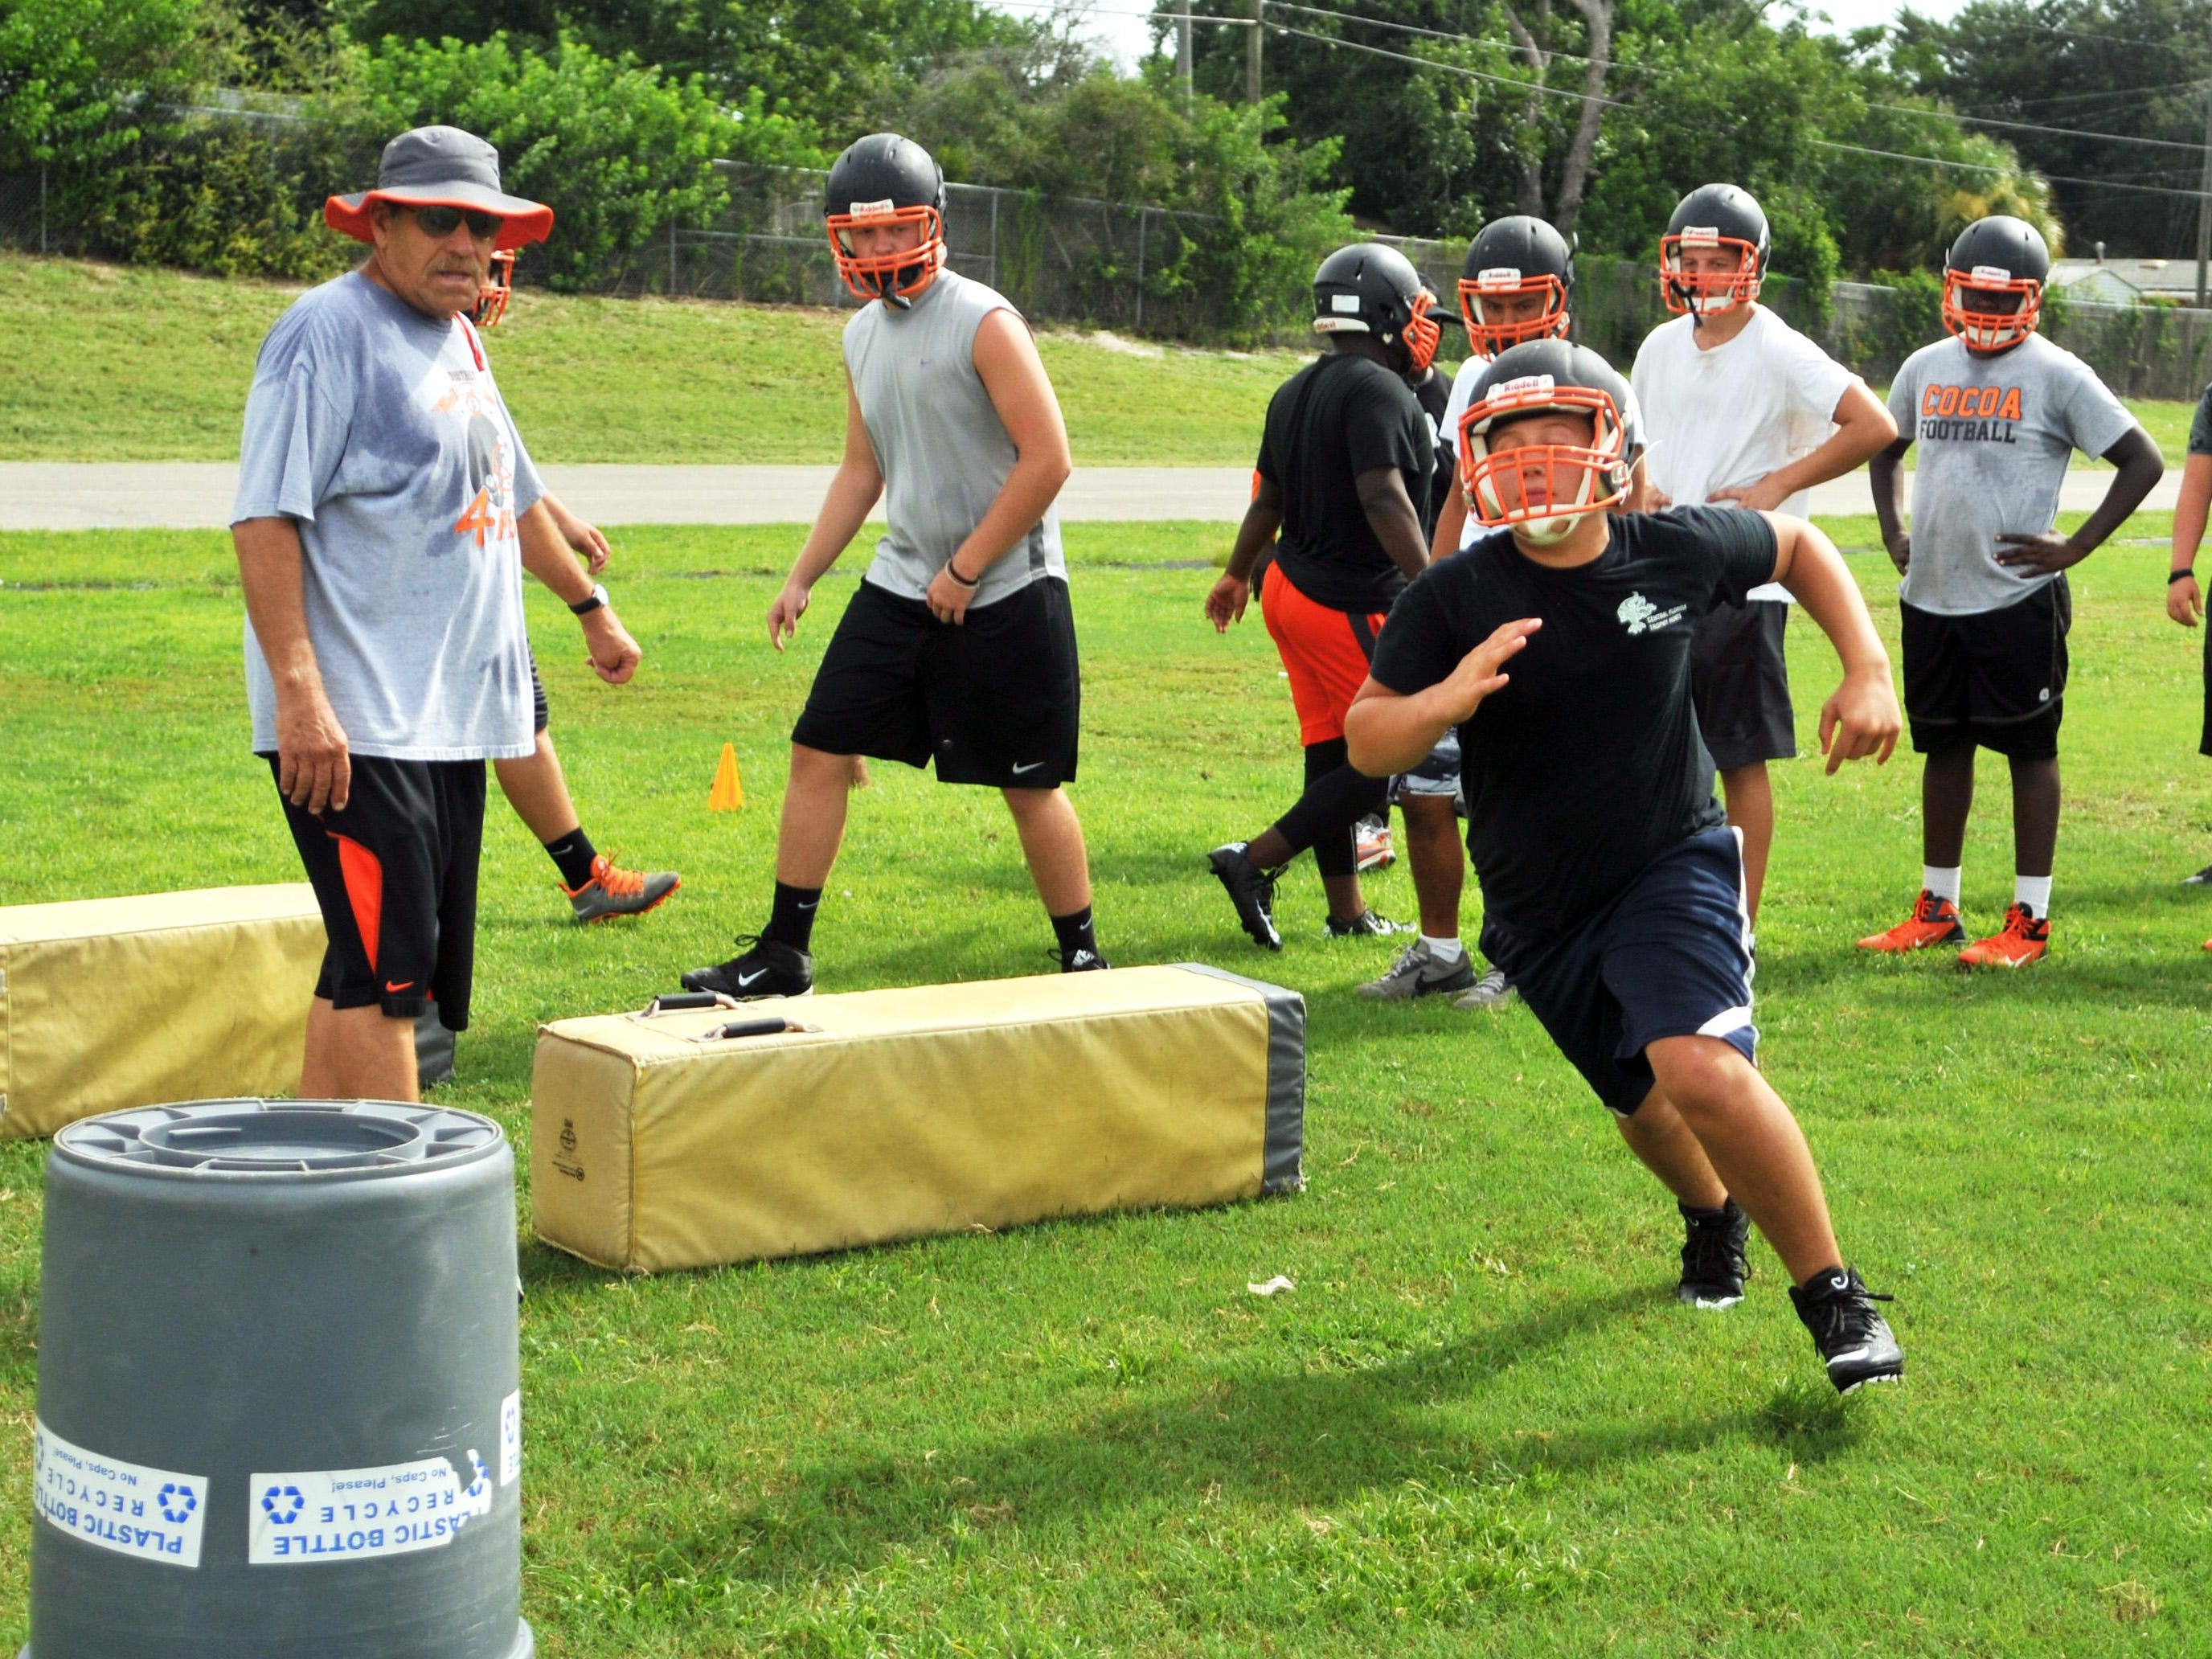 Cocoa Tigers football practice, Monday morning, August 3.